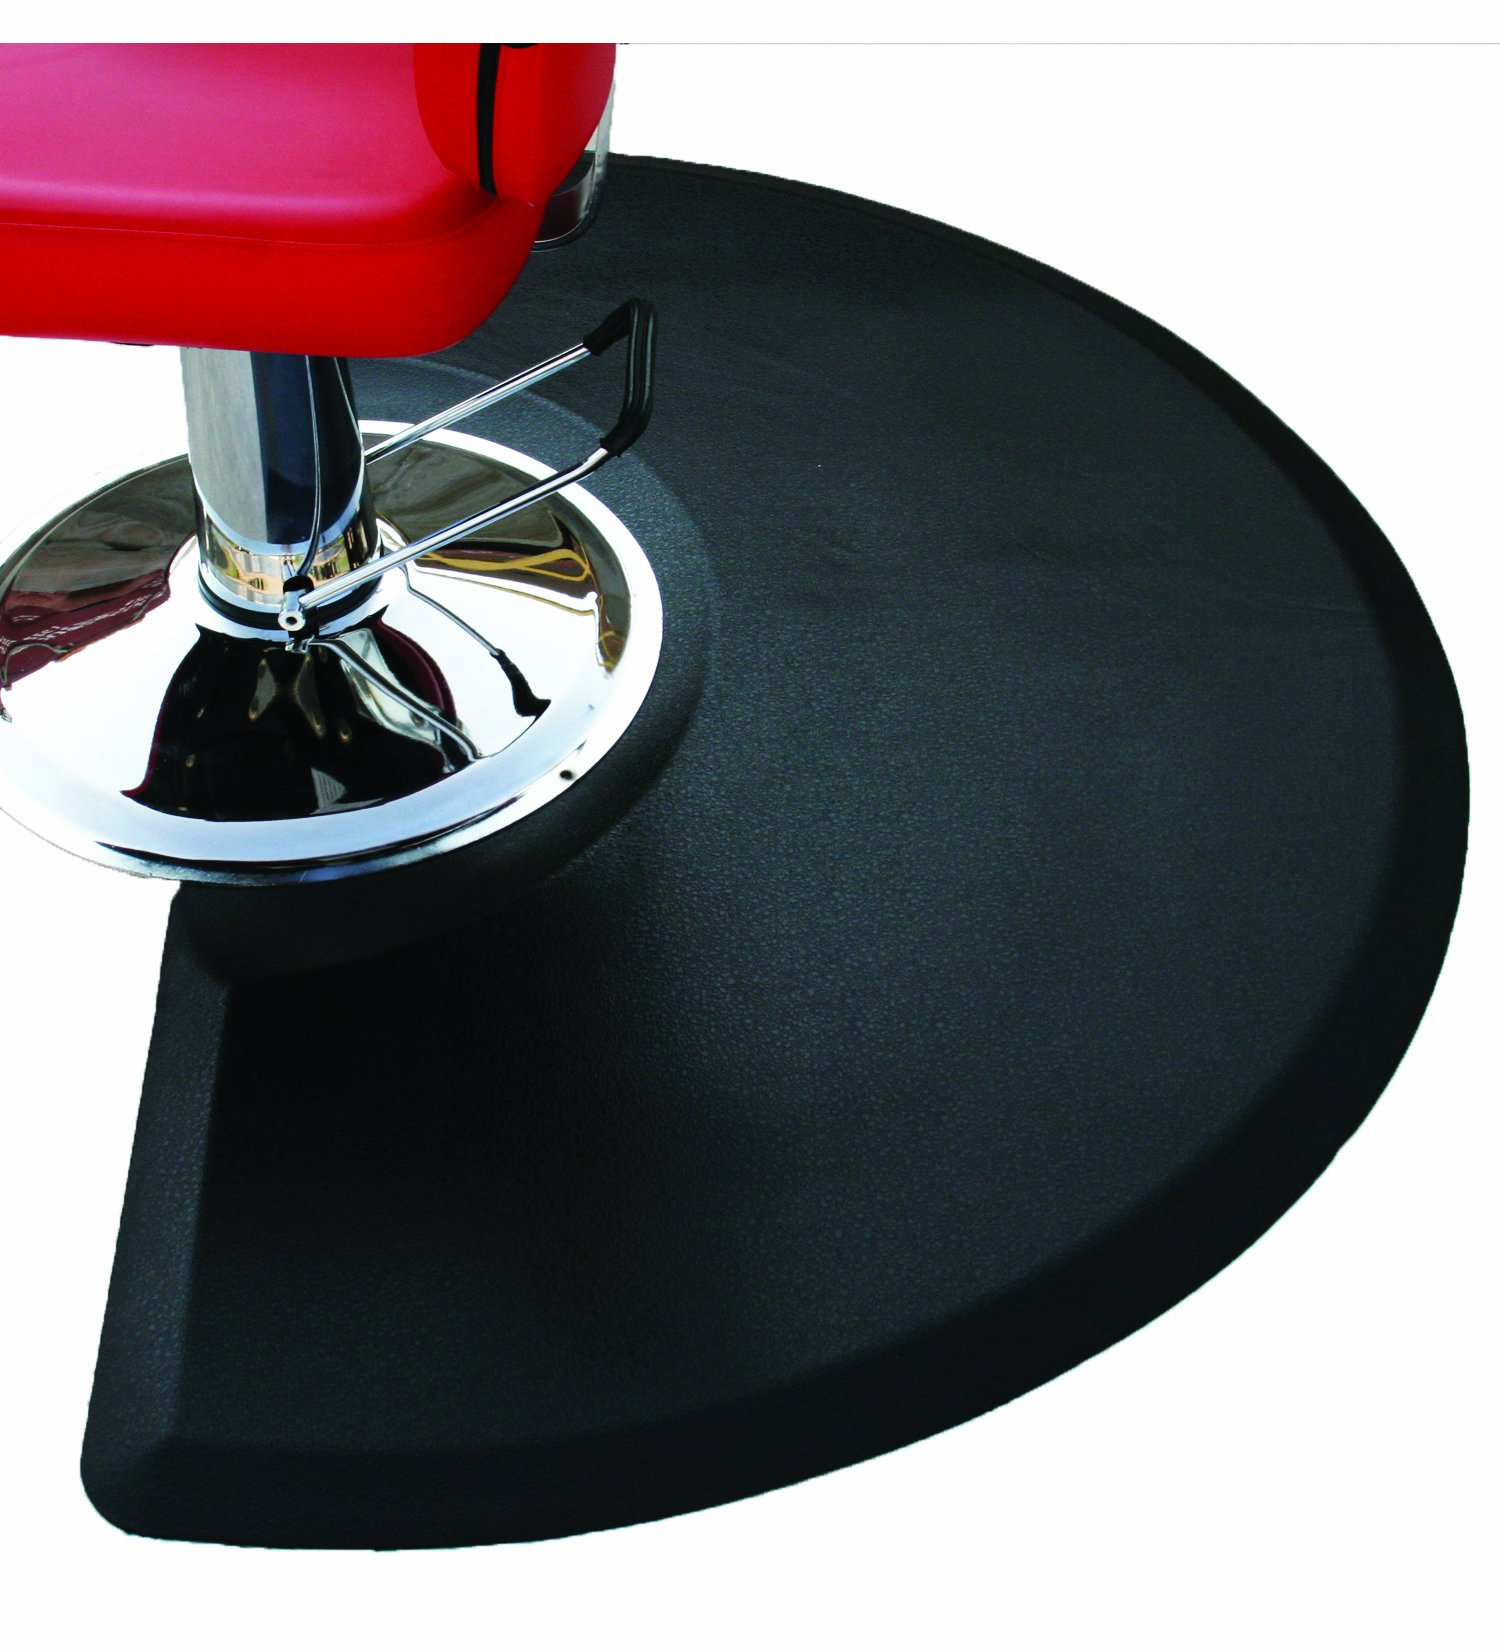 Rhino Mats CCC3660SC Comfort Craft Classic Salon Semi-Circle Mat, 3' Width x 5' Length x 3/4'' Thickness, Black